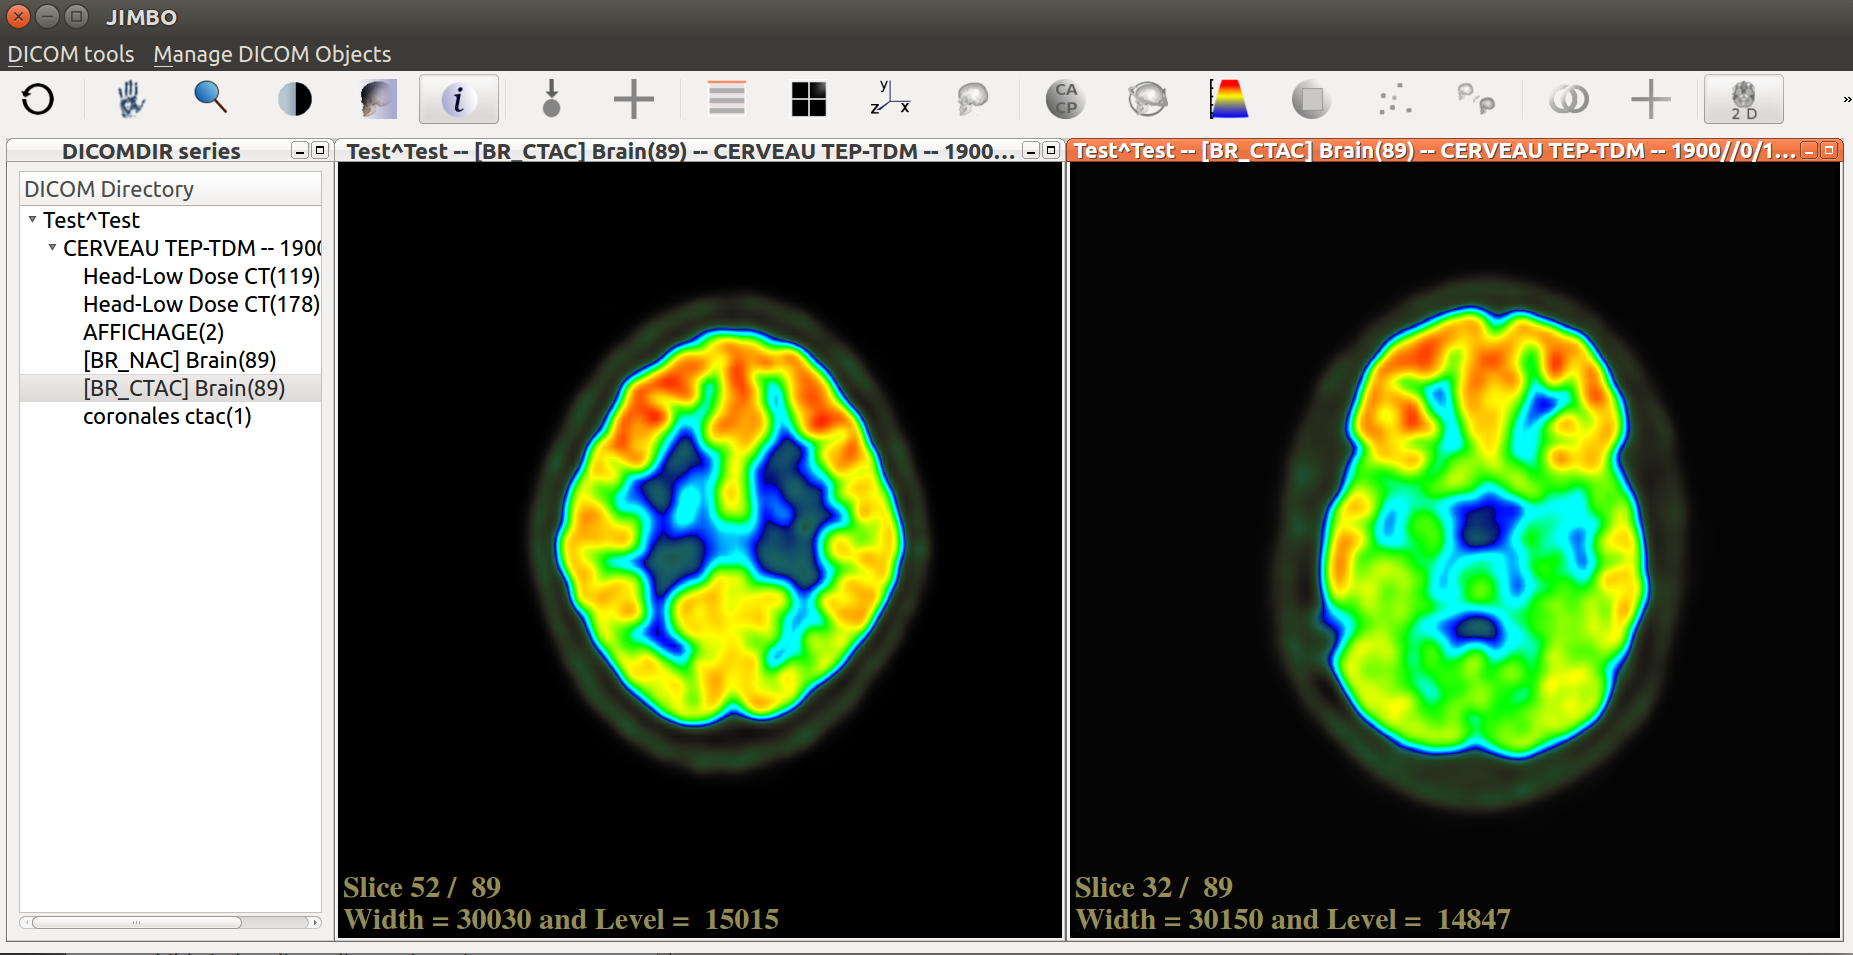 Browsing a series of DICOM images